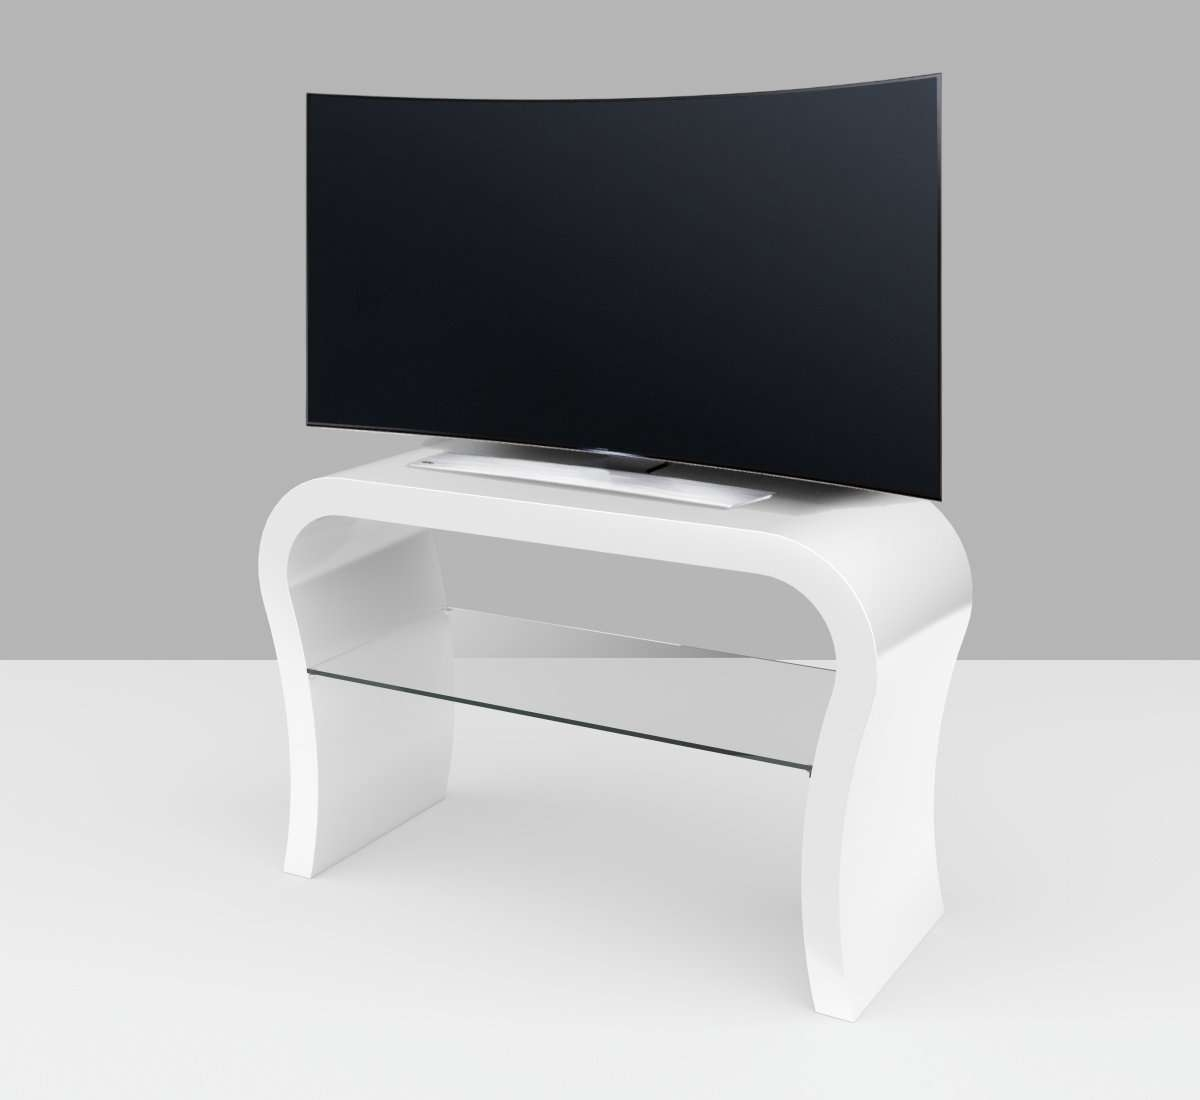 Tv : Wonderful Oak Corner Tv Stand Argos Wonderful White Oval Tv Throughout White Gloss Corner Tv Stands (View 11 of 15)